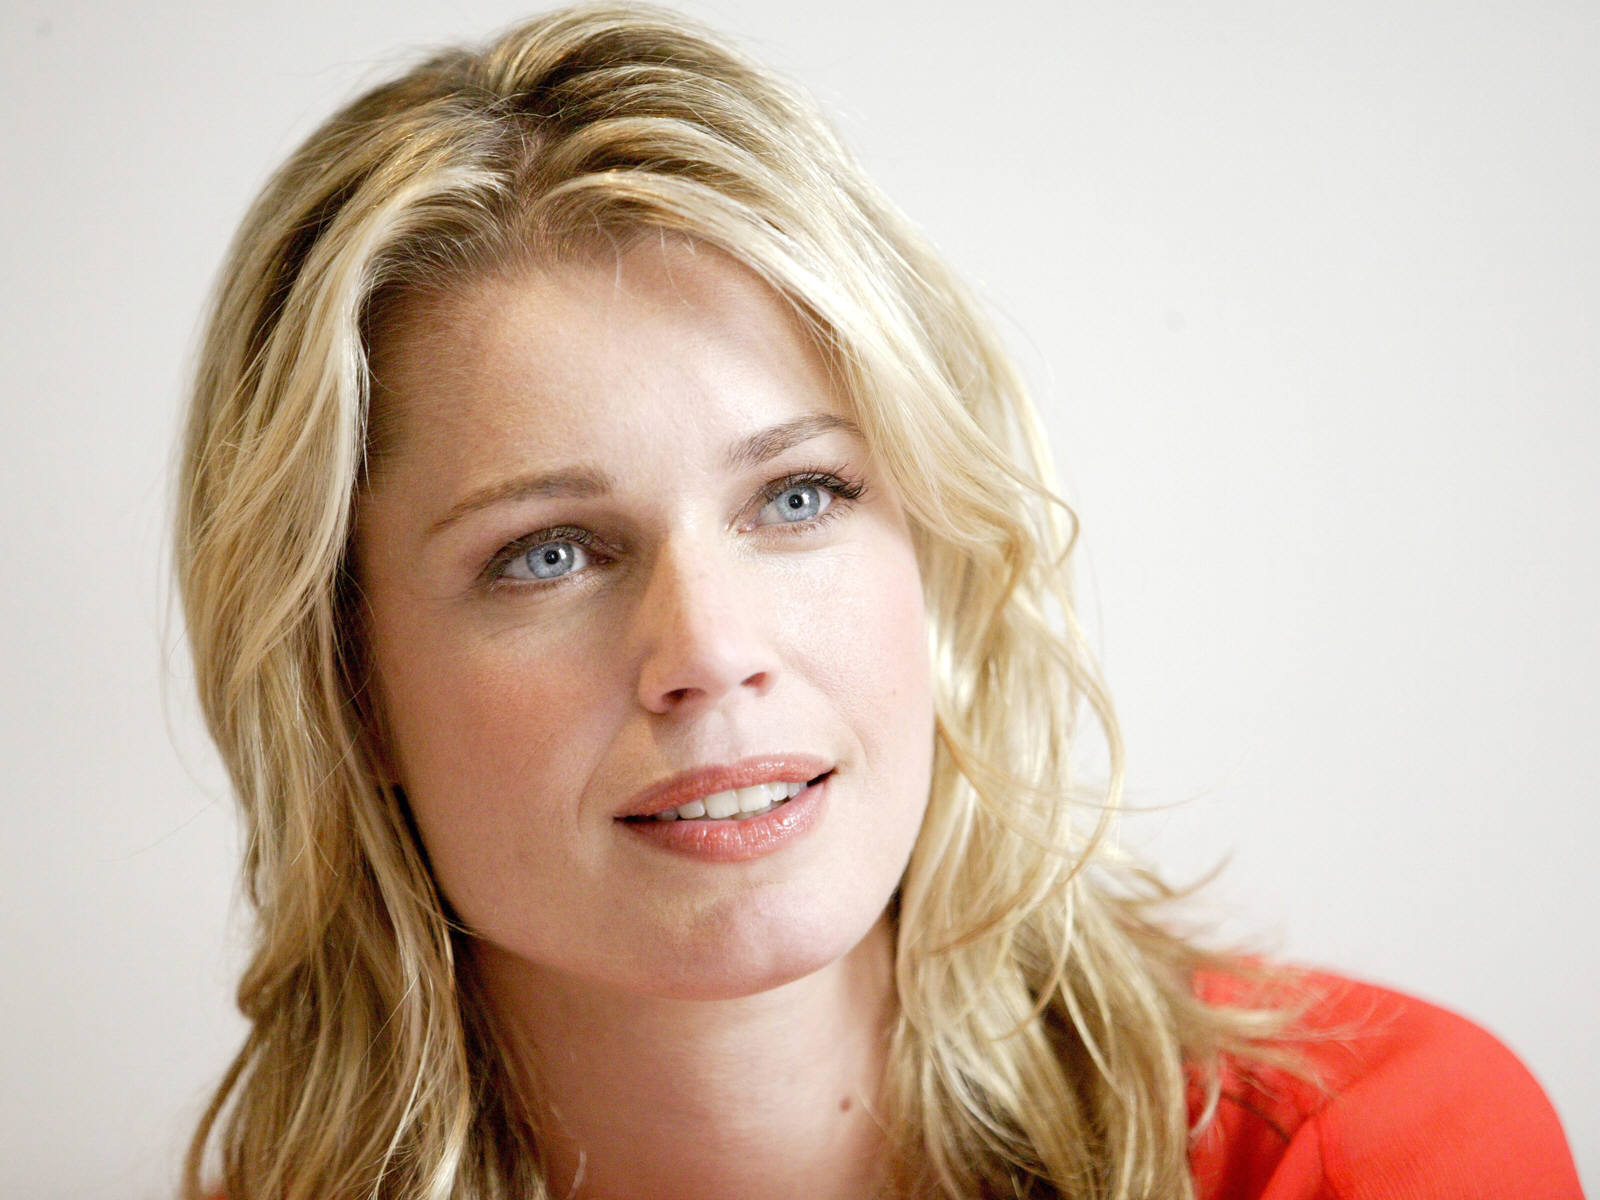 Rebecca Romijn Net Worth, Age, Height, Husband, Profile, Movies